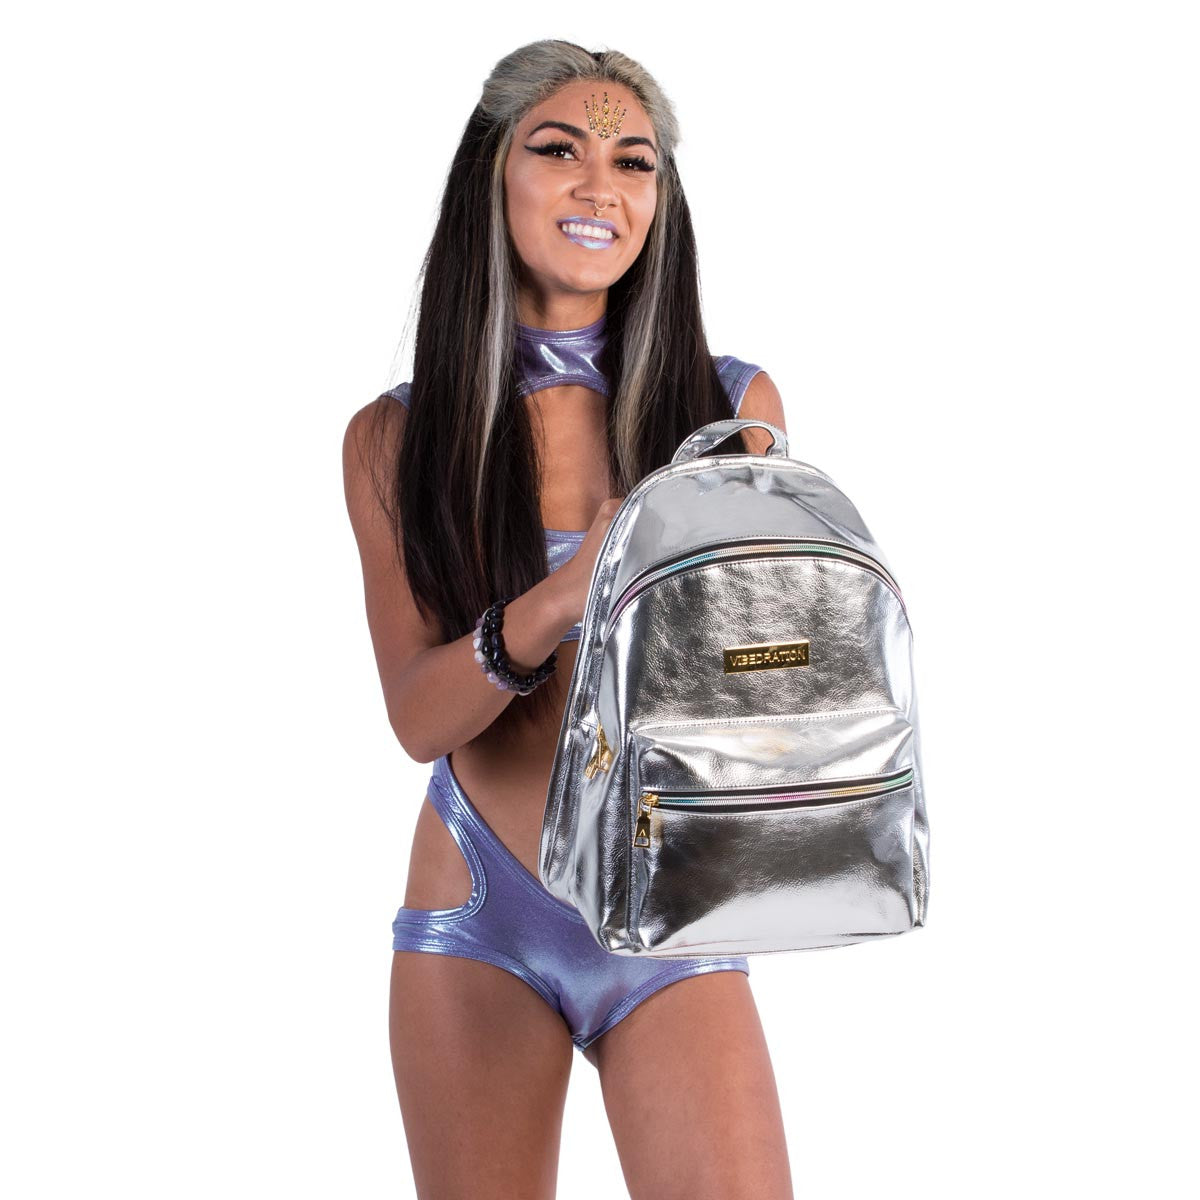 Female holding platinum silver leather hydration pack with rainbow zippers.